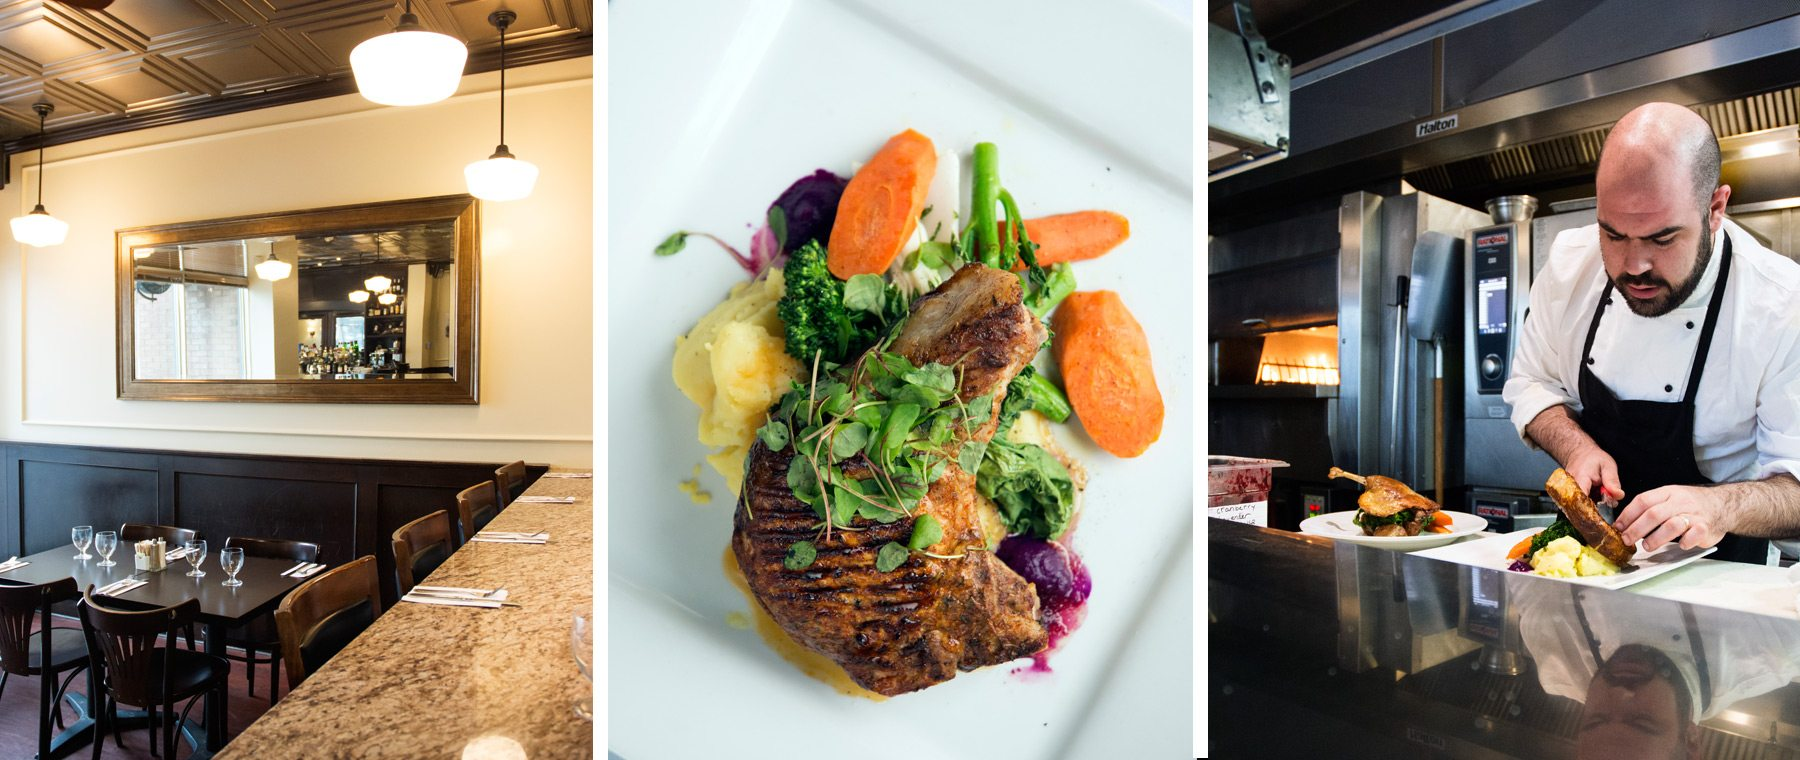 Where to Eat Now: St. Martha's Brasserie